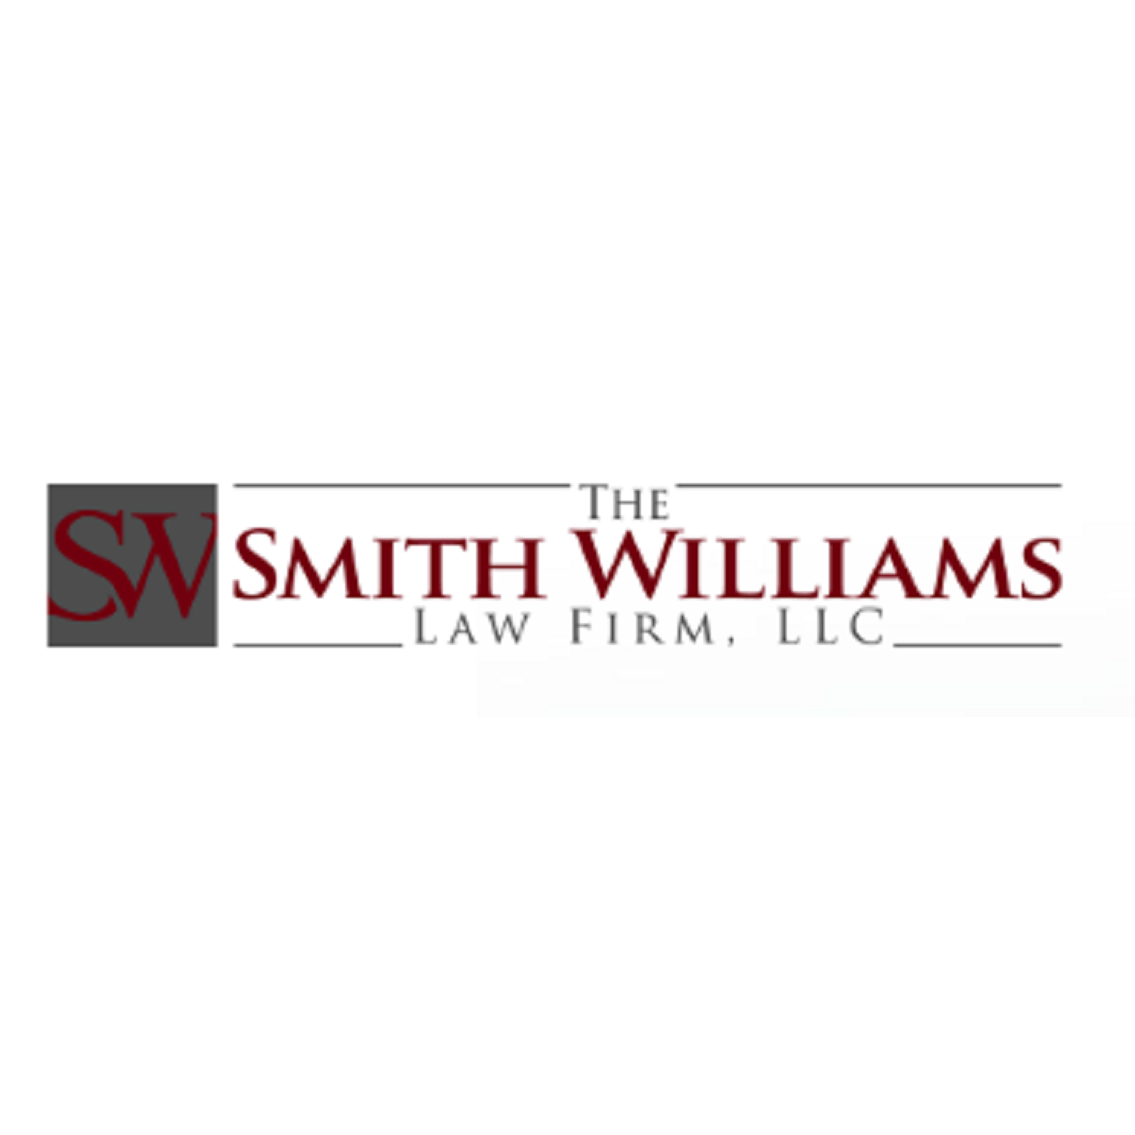 photo of The Smith Williams Law Firm, LLC